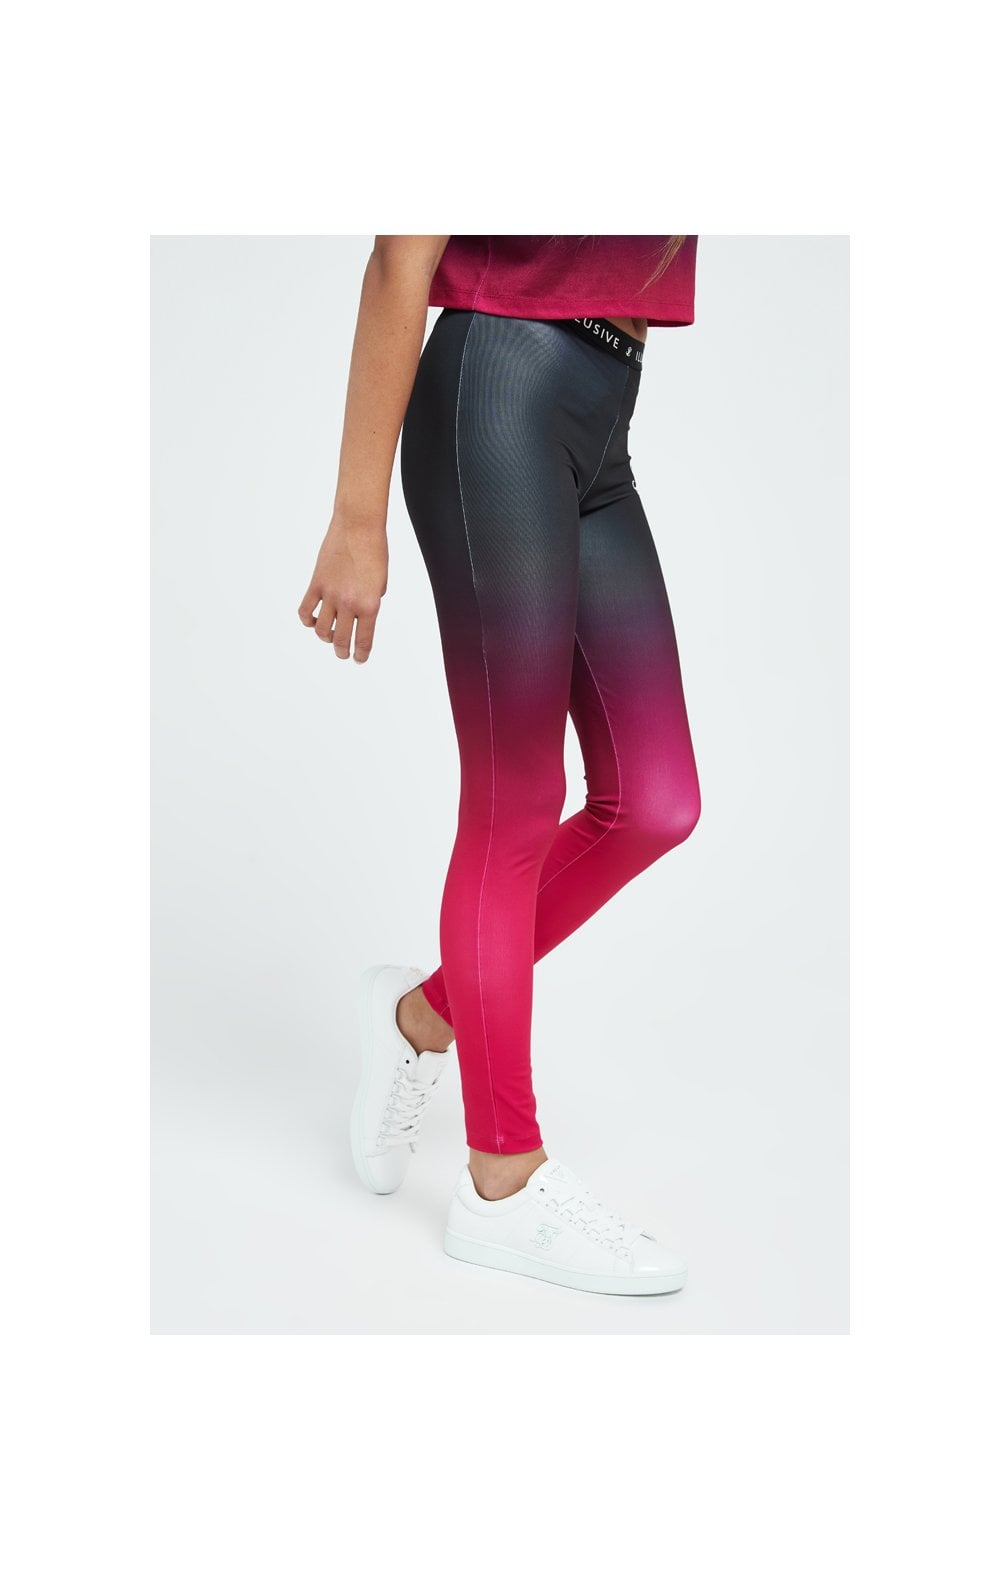 Load image into Gallery viewer, Illusive London Fade Leggings - Pink & Black (2)